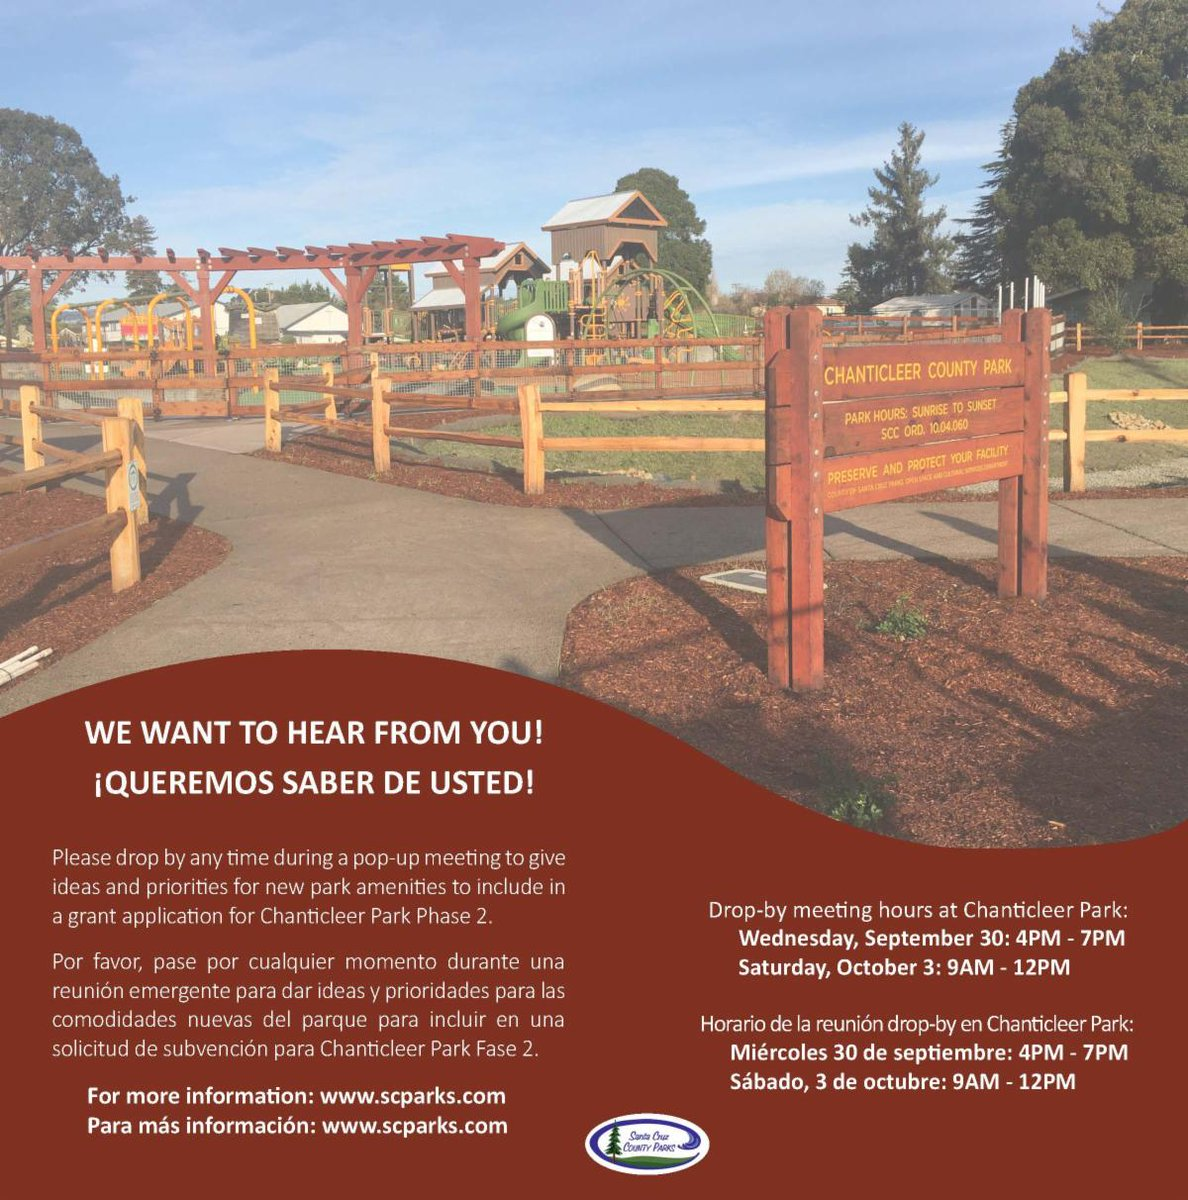 Parks will be holding two pop-up community meetings at Chanticleer Park to get community input on the priorities and most important new park amenities to include in a grant application for construction of phase 2 of the park. Wed, Sept. 30: 4PM - 7PM & Sat, Oct. 3: 9AM - 12PM